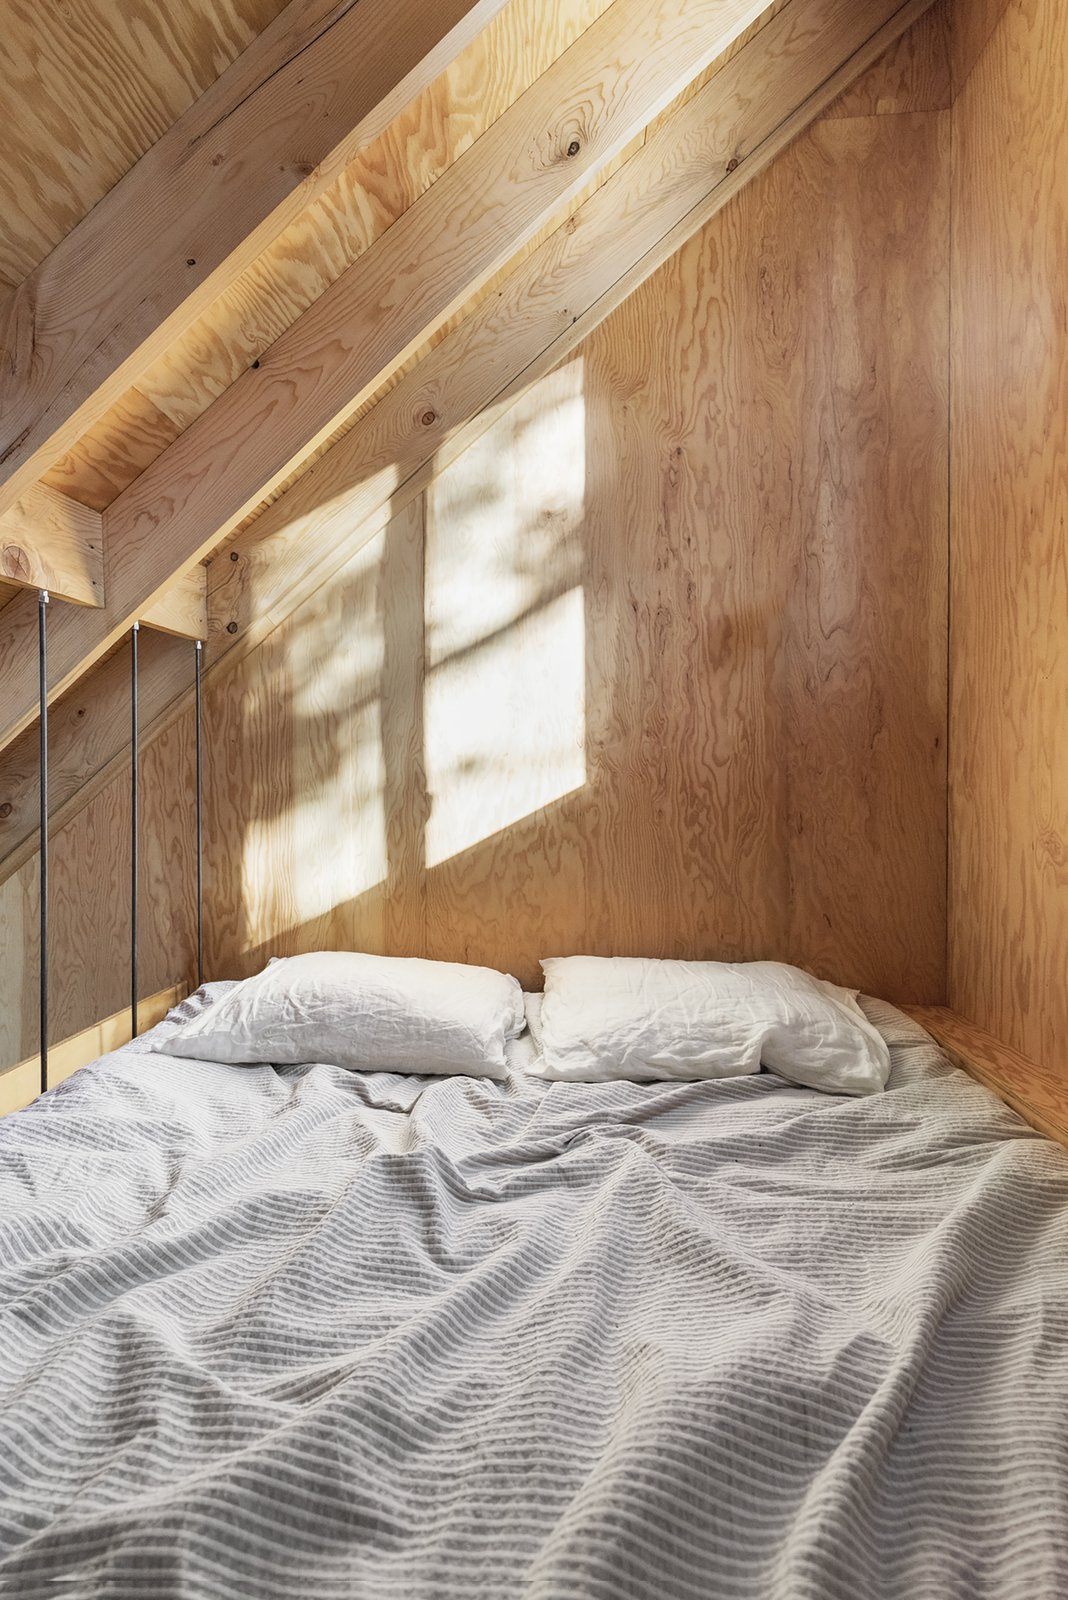 Bedroom and Bed The bed is suspended in the cathedral ceiling, overlooking the cabin.  La Pointe by L'Abri